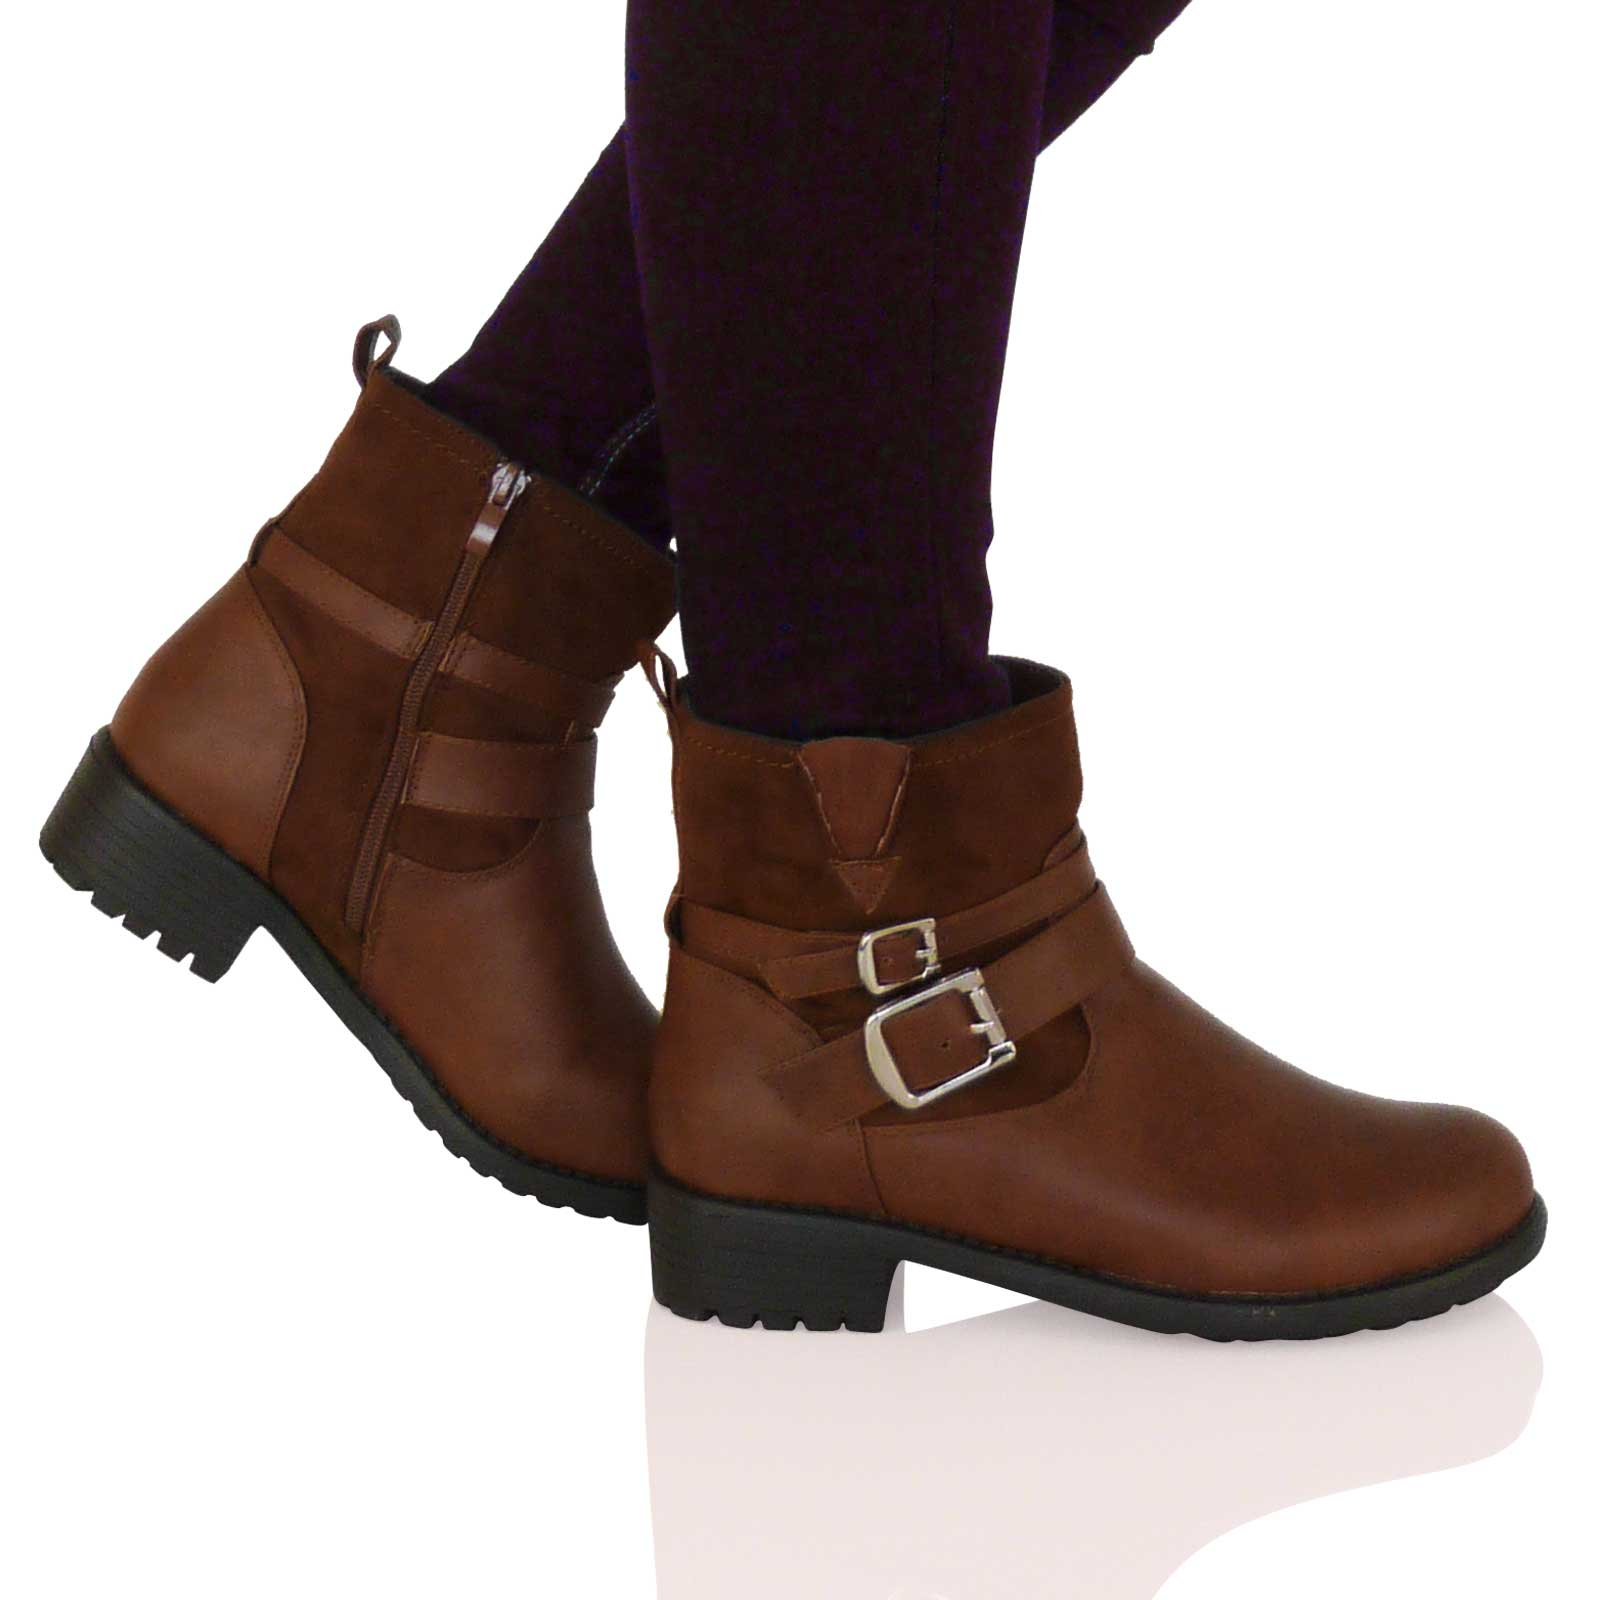 Awesome Whether Youre Looking To Amp Up Your Game Day Outfit, Snazz Up Your Business Suit, Or Just Keep Your Tootsies Toasty When The Snow Flies, Be Sure To Check Out These Top 20 Best Womens Boots For Fall &amp Winter  Boots, You Can